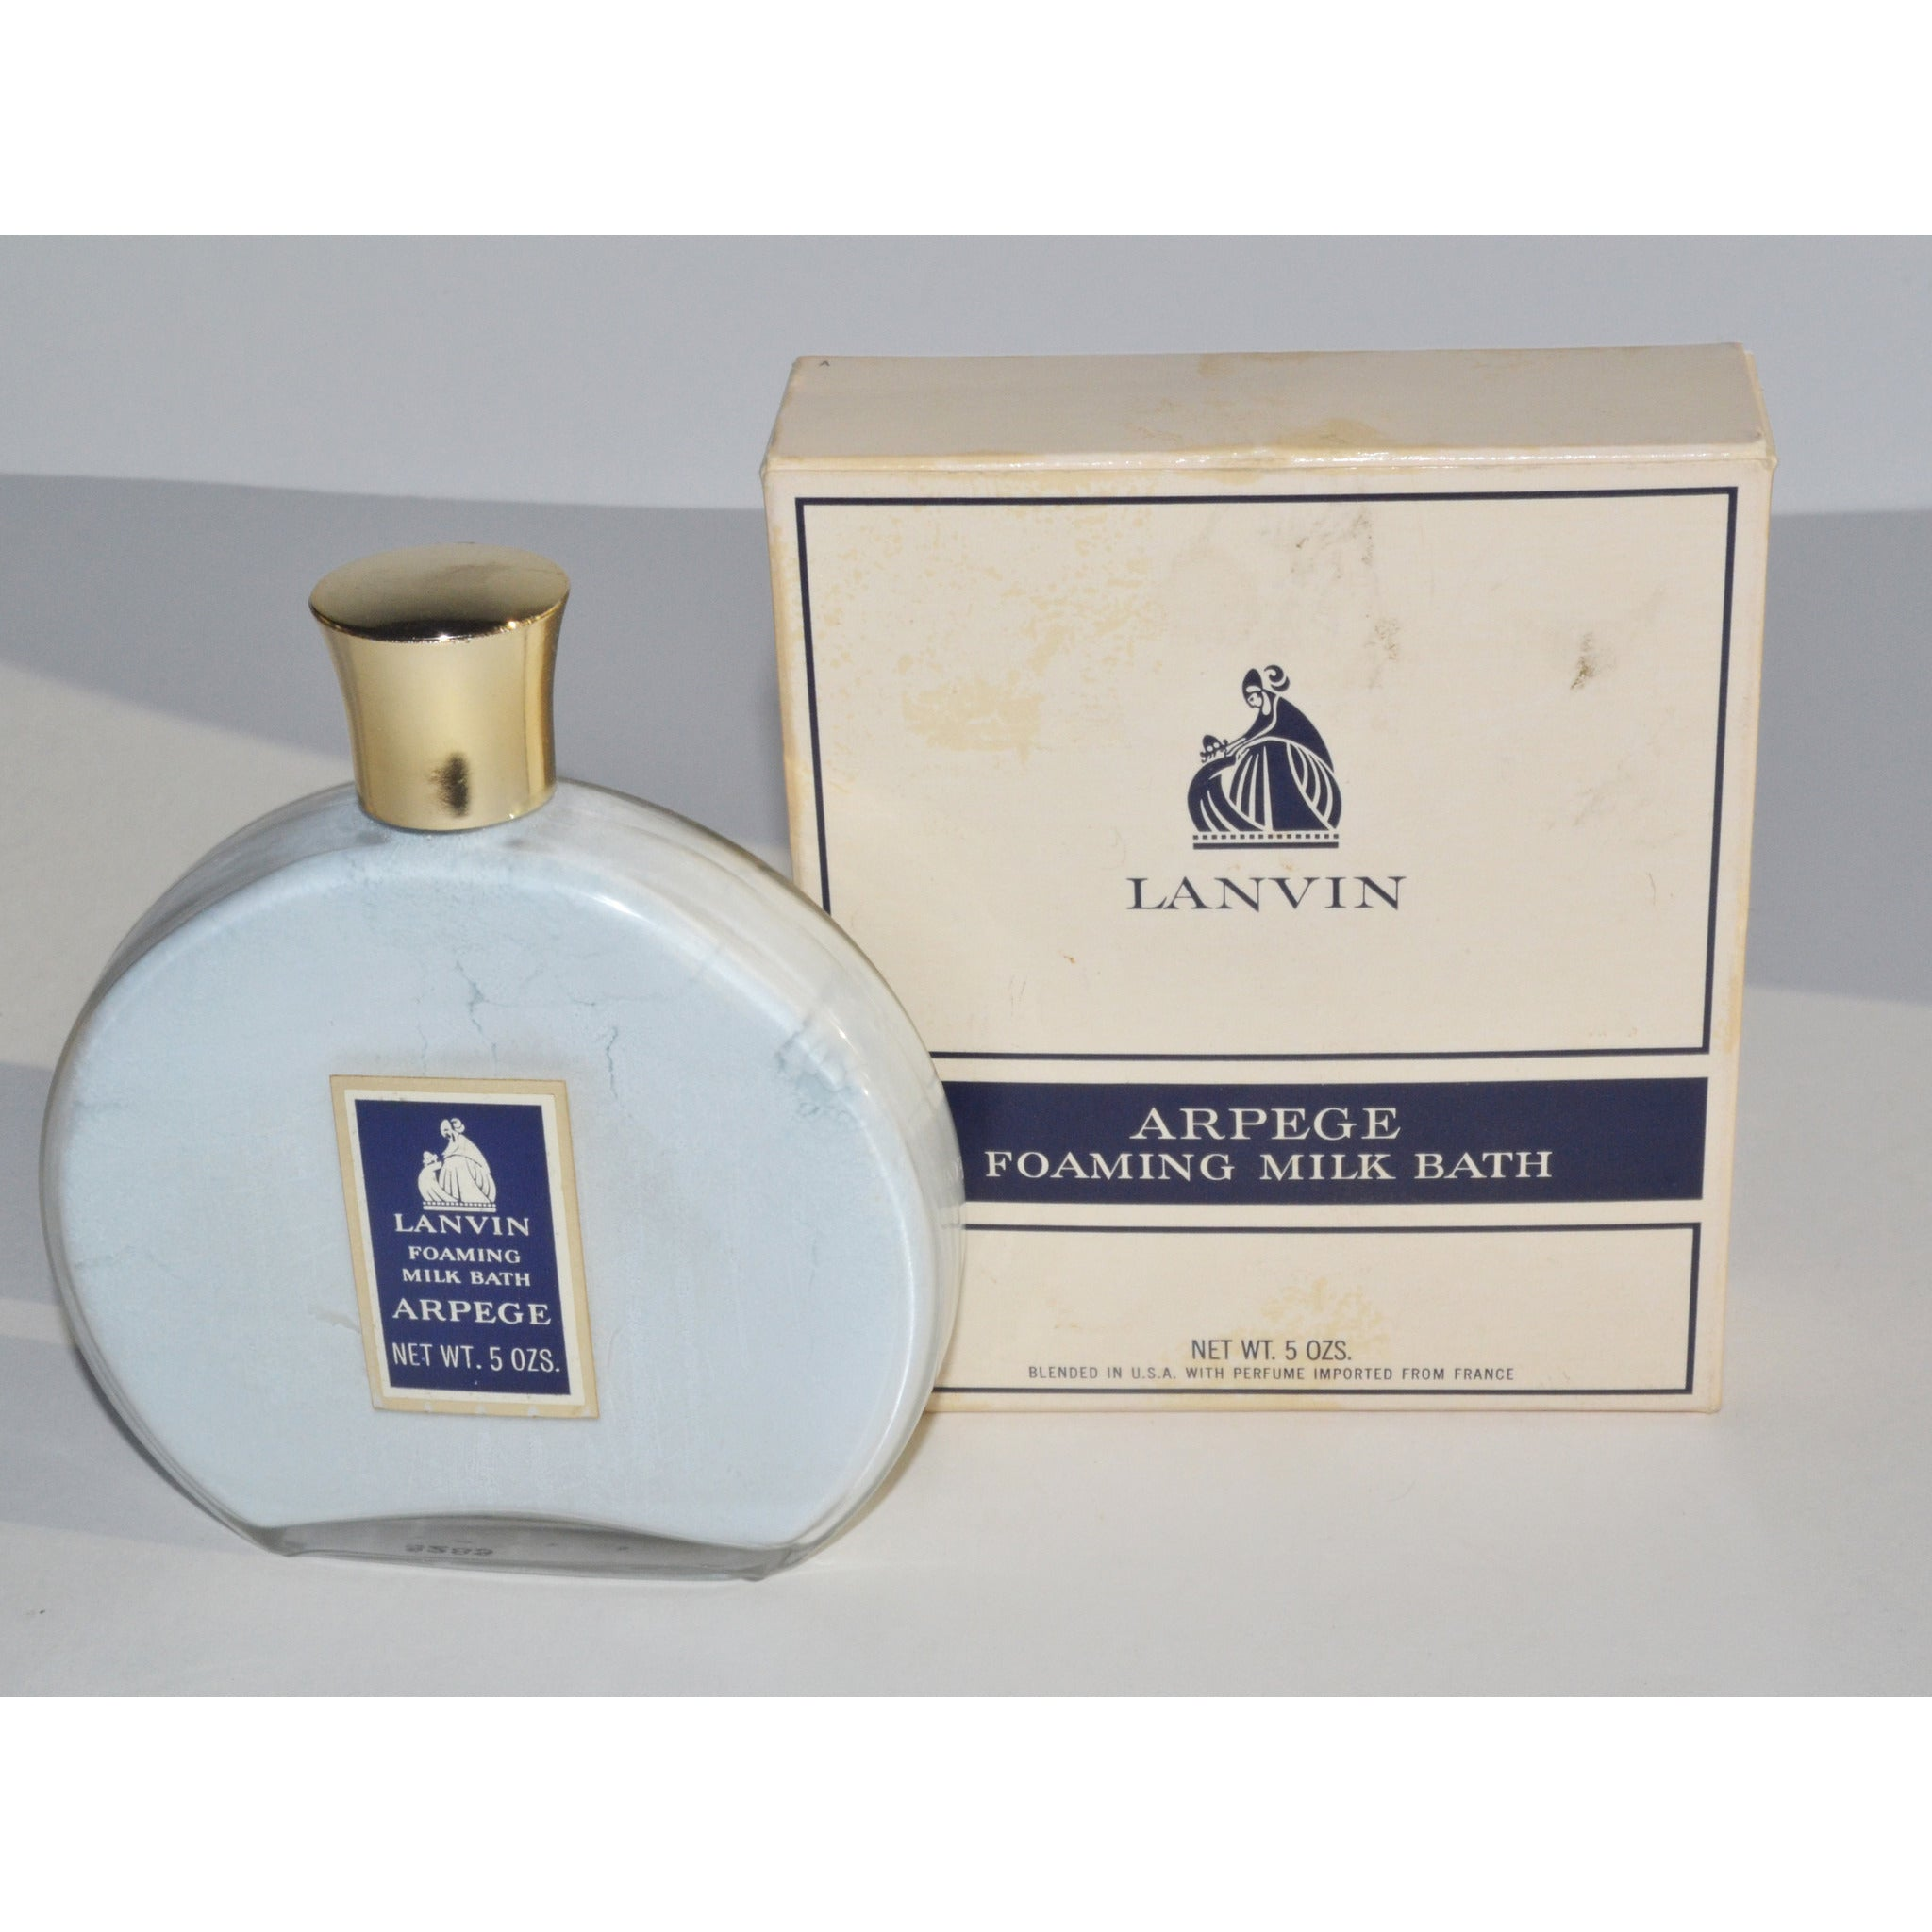 Vintage Arpege Foaming Milk Bath By Lanvin